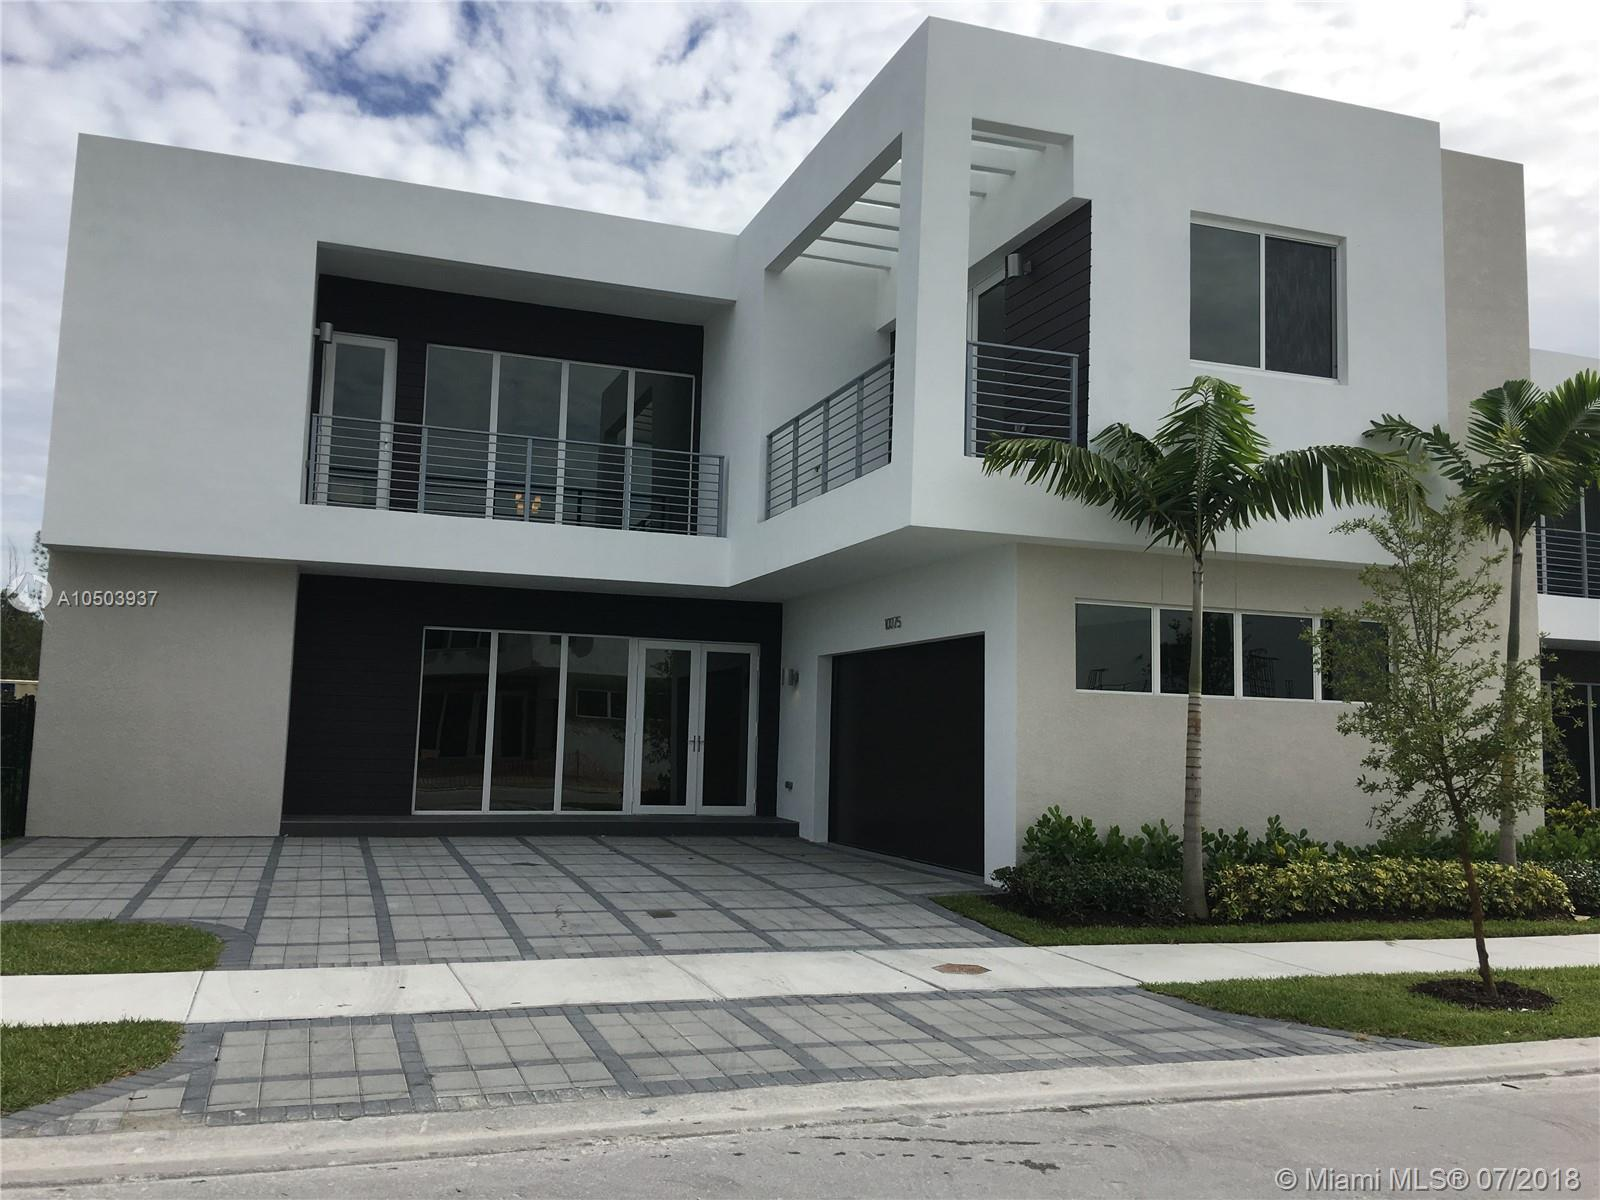 10075 NW 77th St, Doral, Florida 33178, 5 Bedrooms Bedrooms, ,5 BathroomsBathrooms,Residential,For Sale,10075 NW 77th St,A10503937